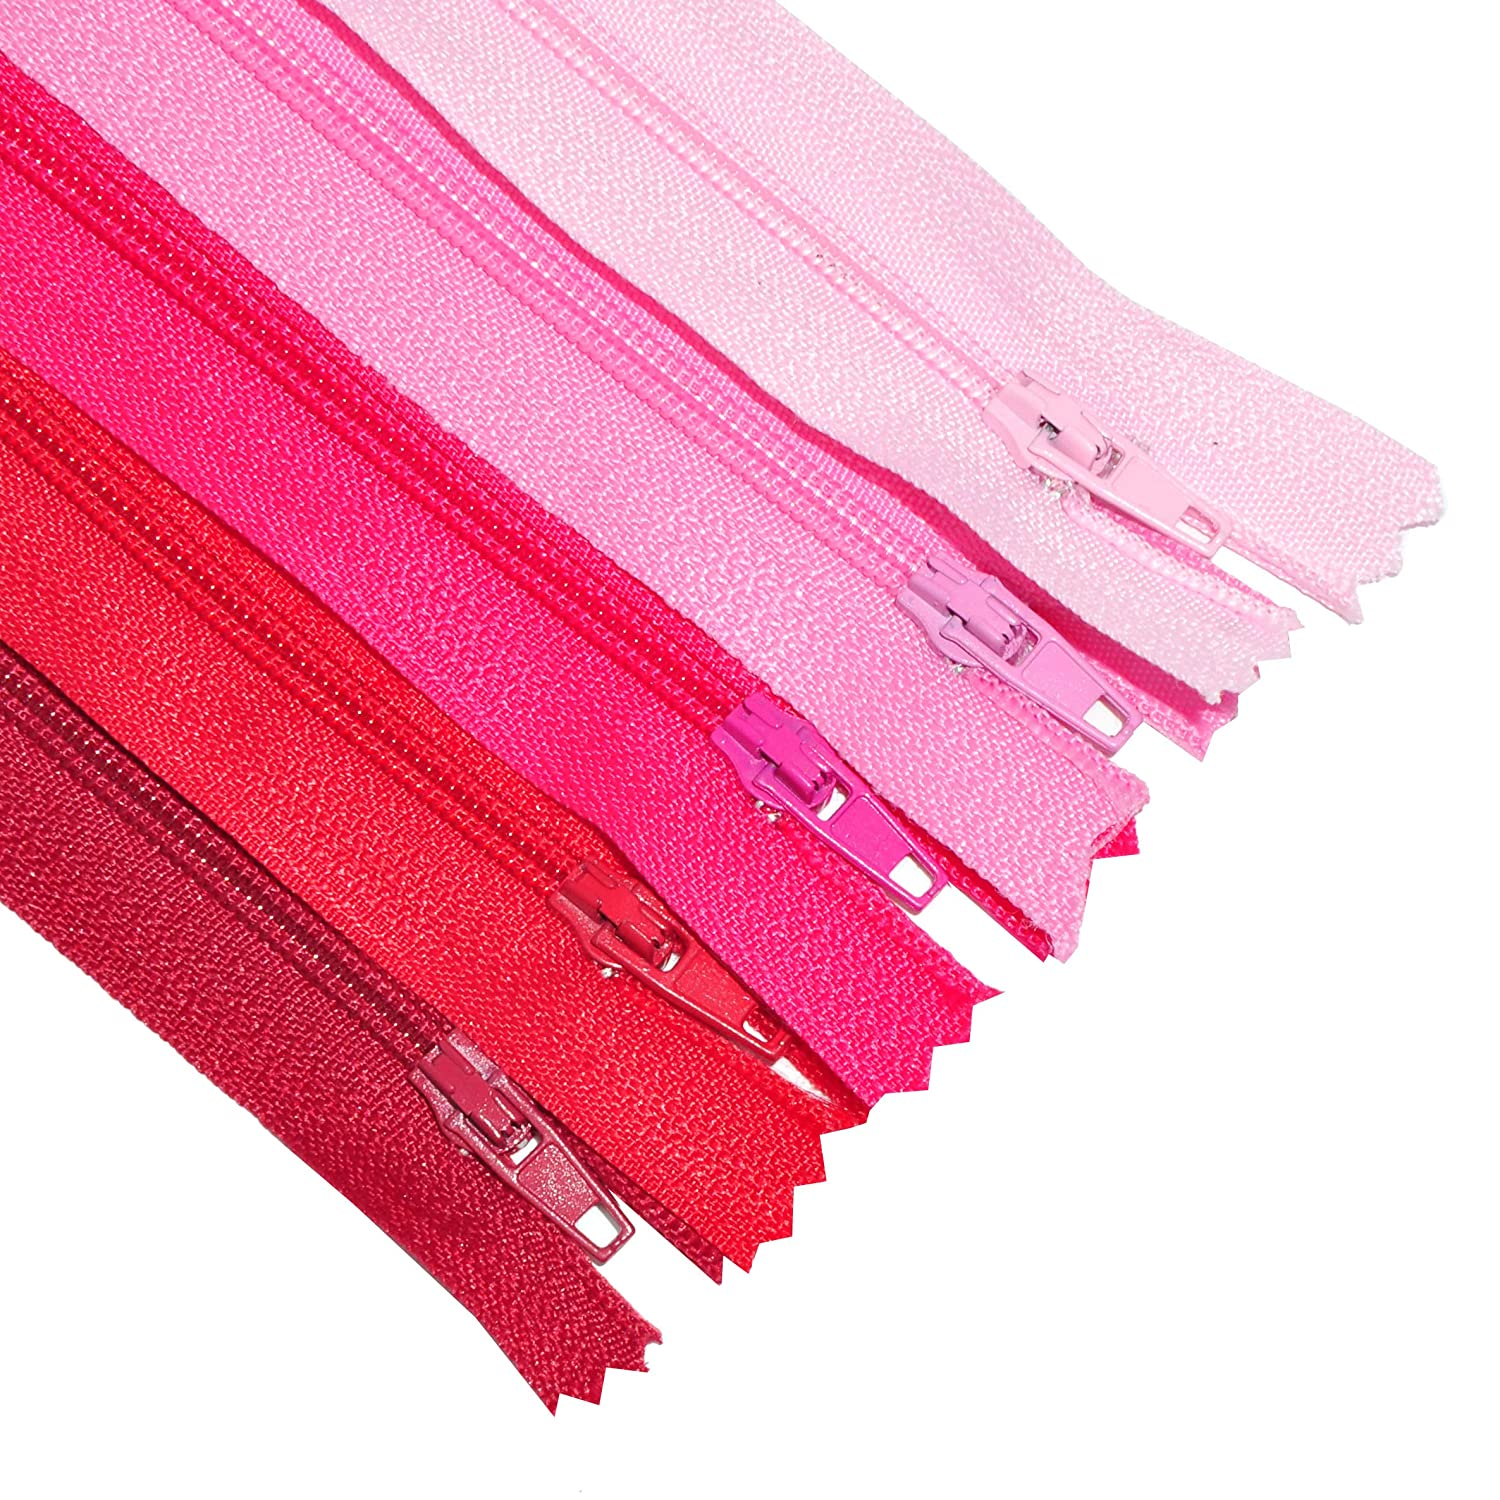 5 Inches 100 Count, 20 Assorted Colors Handbag Purse Making Wholesale Pack Clothing Mandala Crafts Colored Nylon Coil Zipper for Sewing